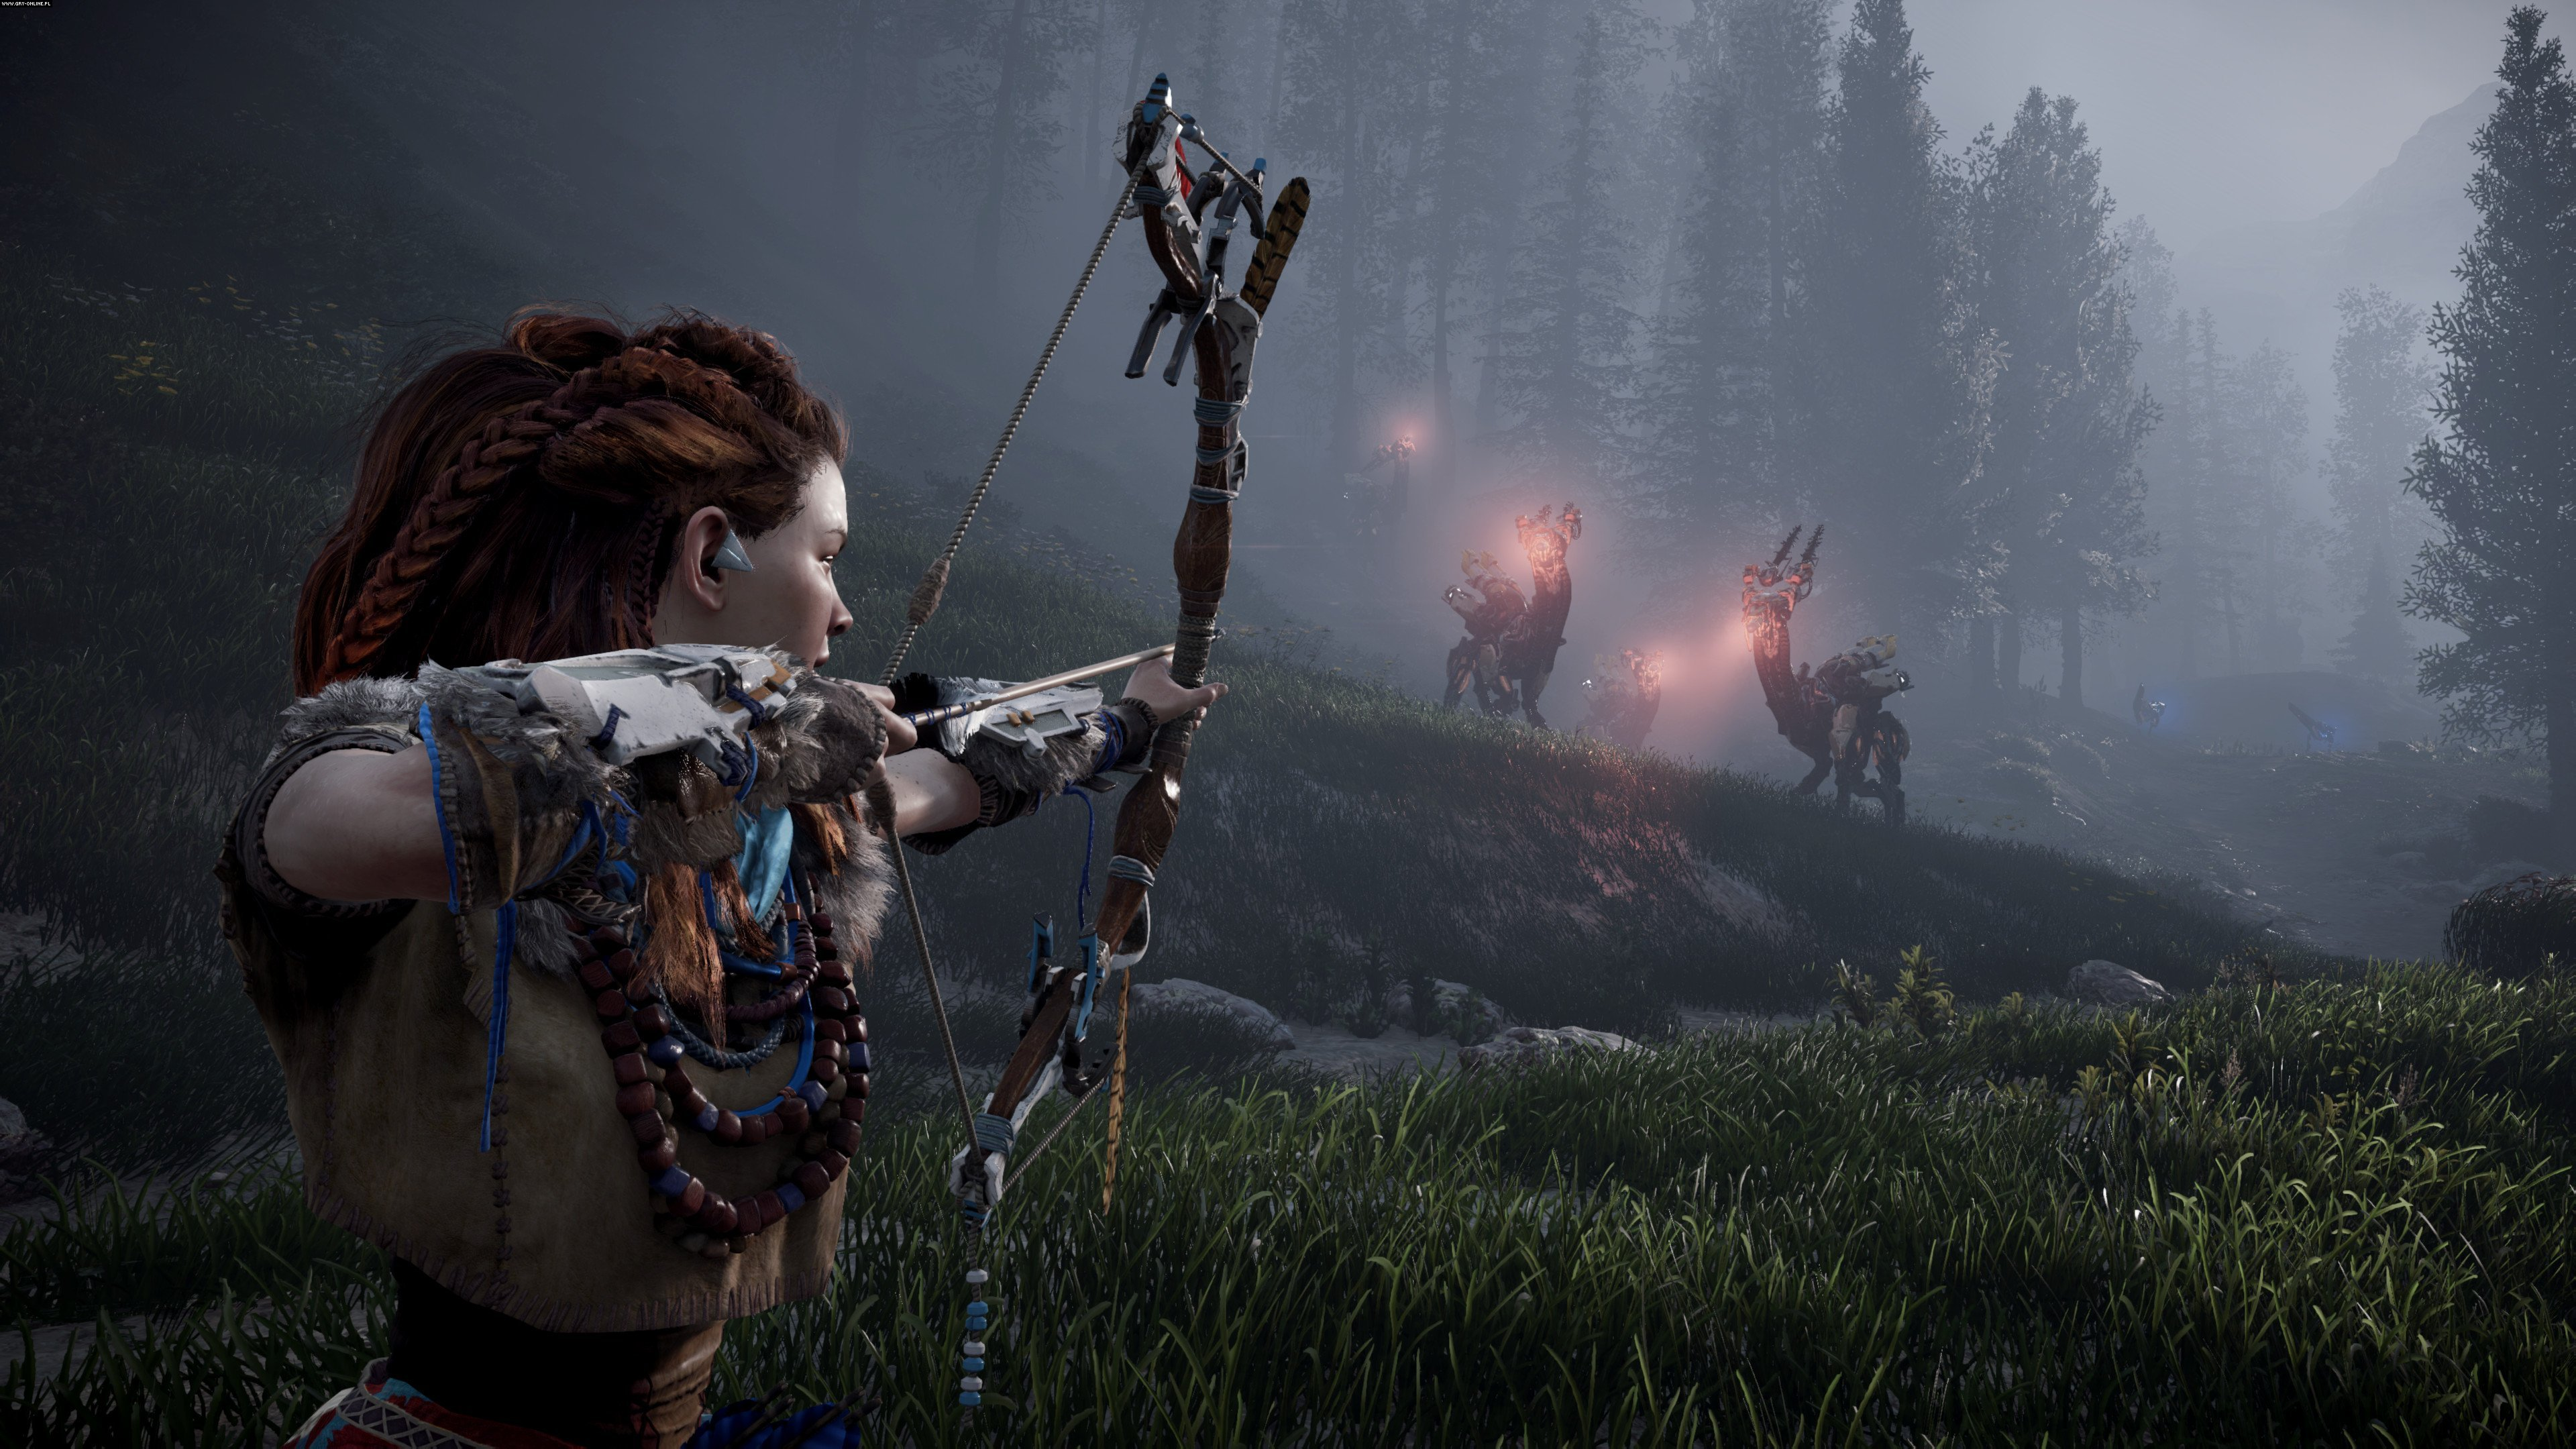 Horizon Zero Dawn PS4 Games Image 1/54, Guerrilla Games, Sony Interactive Entertainment